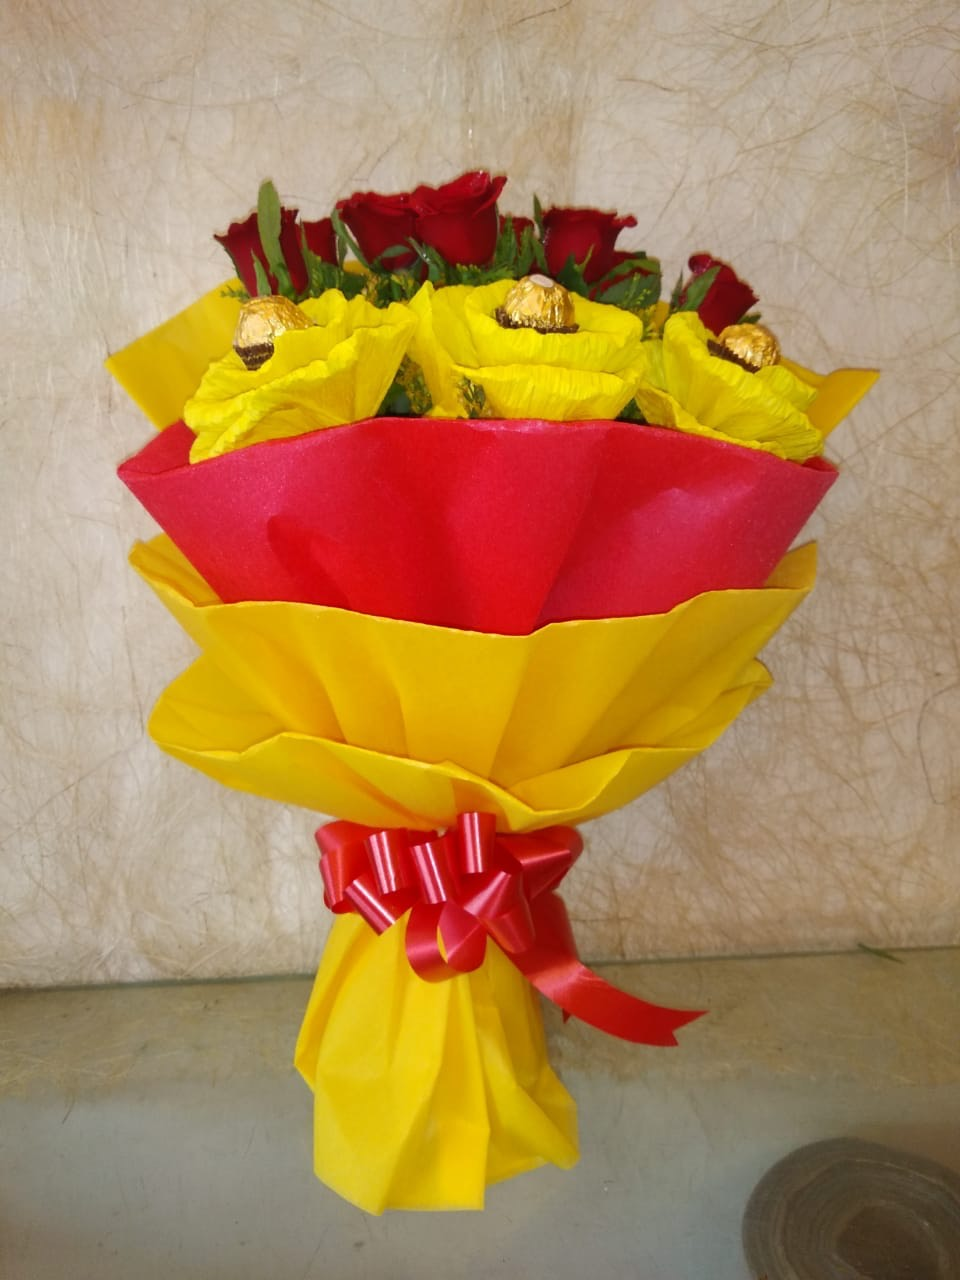 send flower Anand Parbat DelhiRed Roses Ferrero Rocher Bunch